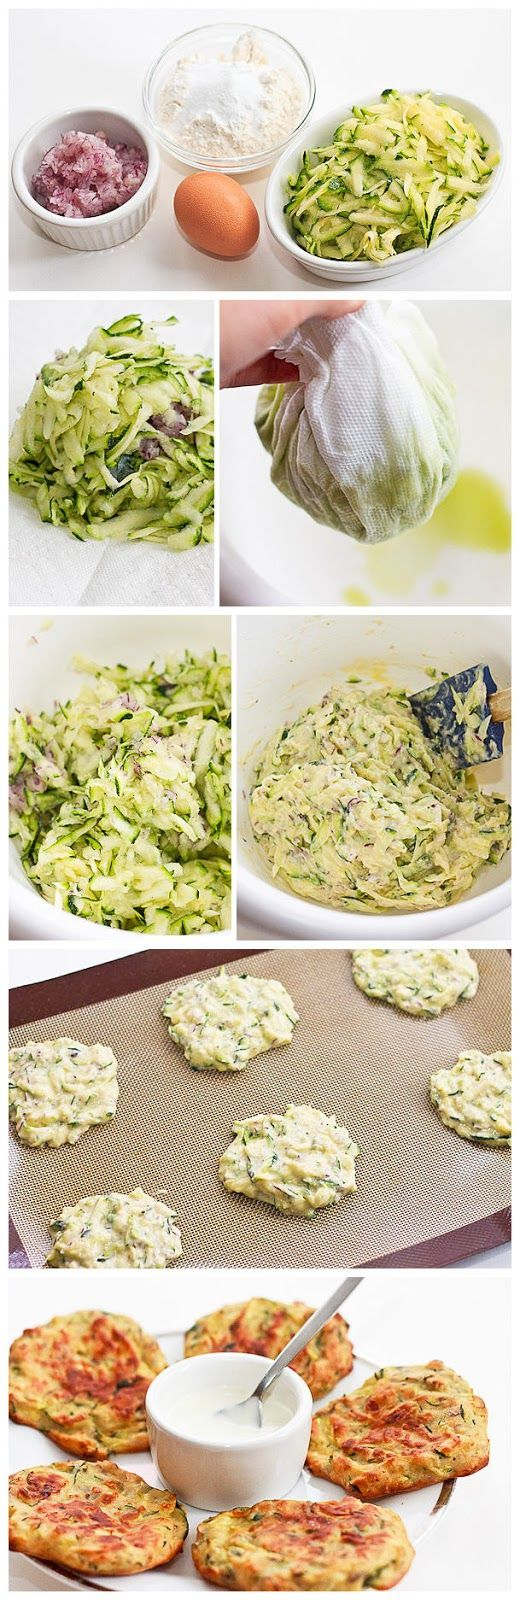 Super Yummy BAKED Zucchini Fritters - Healthy, Can be vegan, vegetarian, gluten free @nicklise here you go darlin :) enjoy!